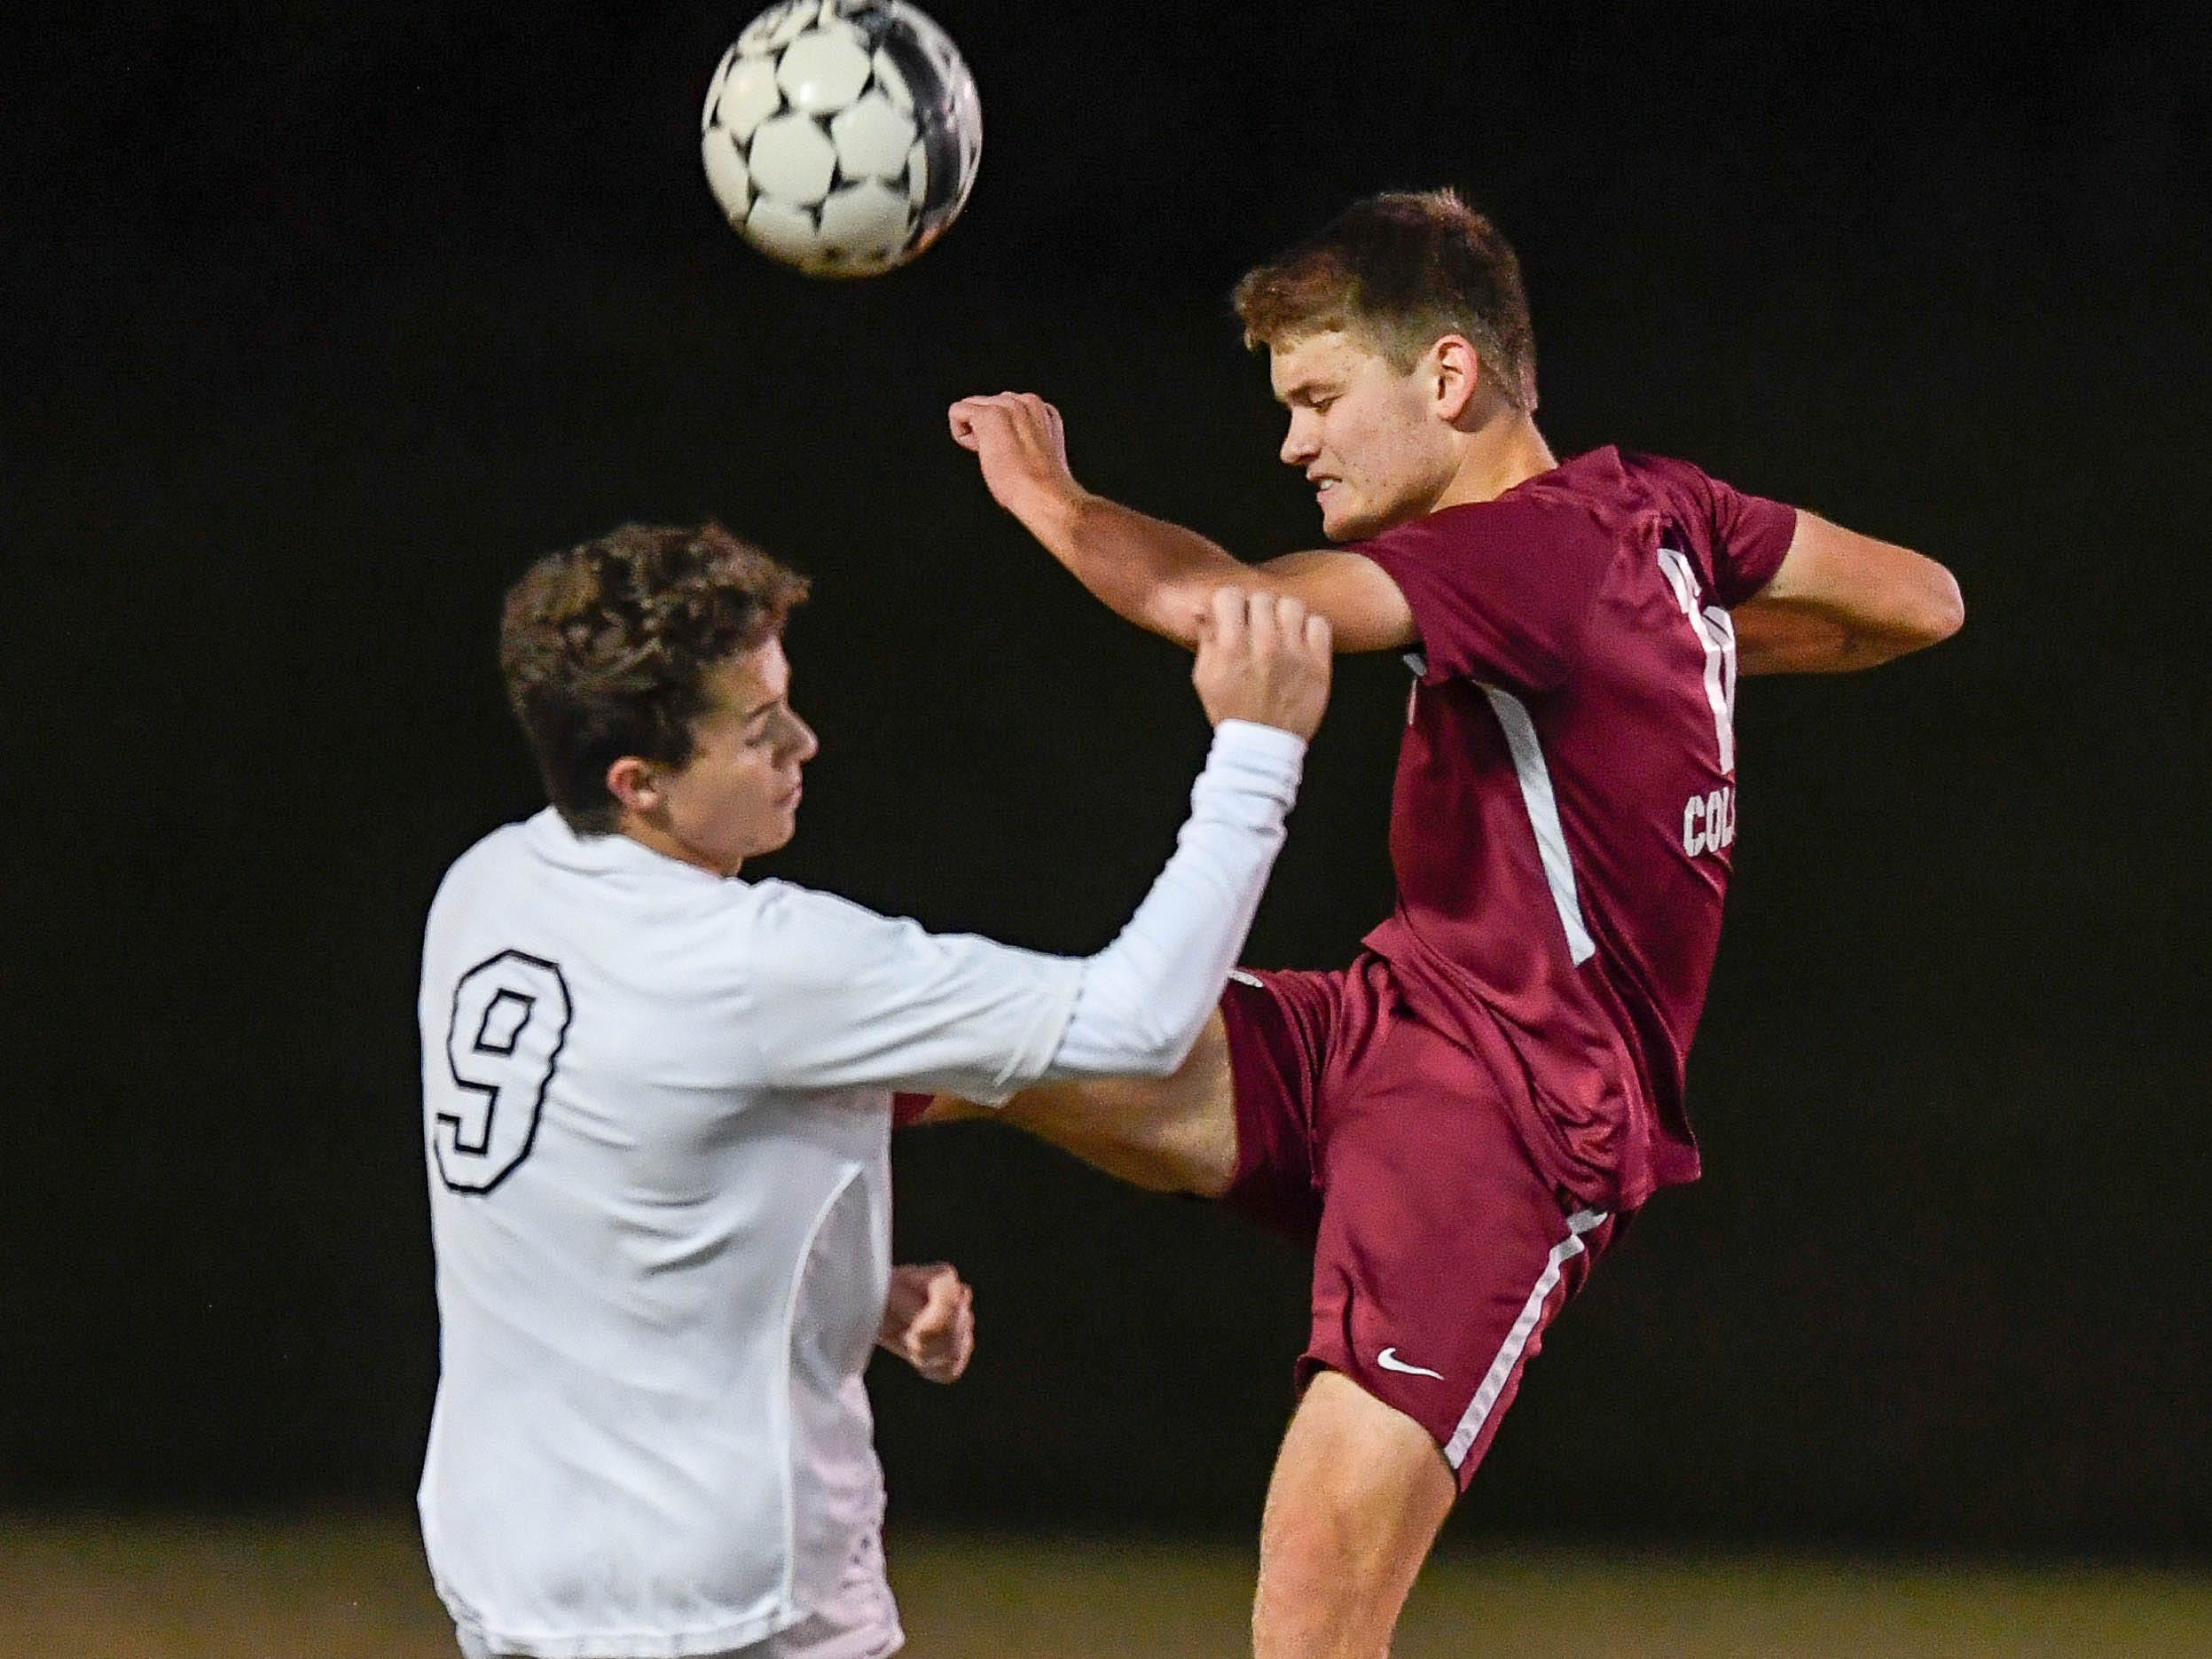 Hopkinsville's Ryan Roussel (9) and Henderson County's Lucas Butler (16) battle for control of the ball as the Henderson County Colonels play the Hopkinsville Tigers in the regional final at Madisonville-North Hopkins High School Thursday, October 18, 2018.